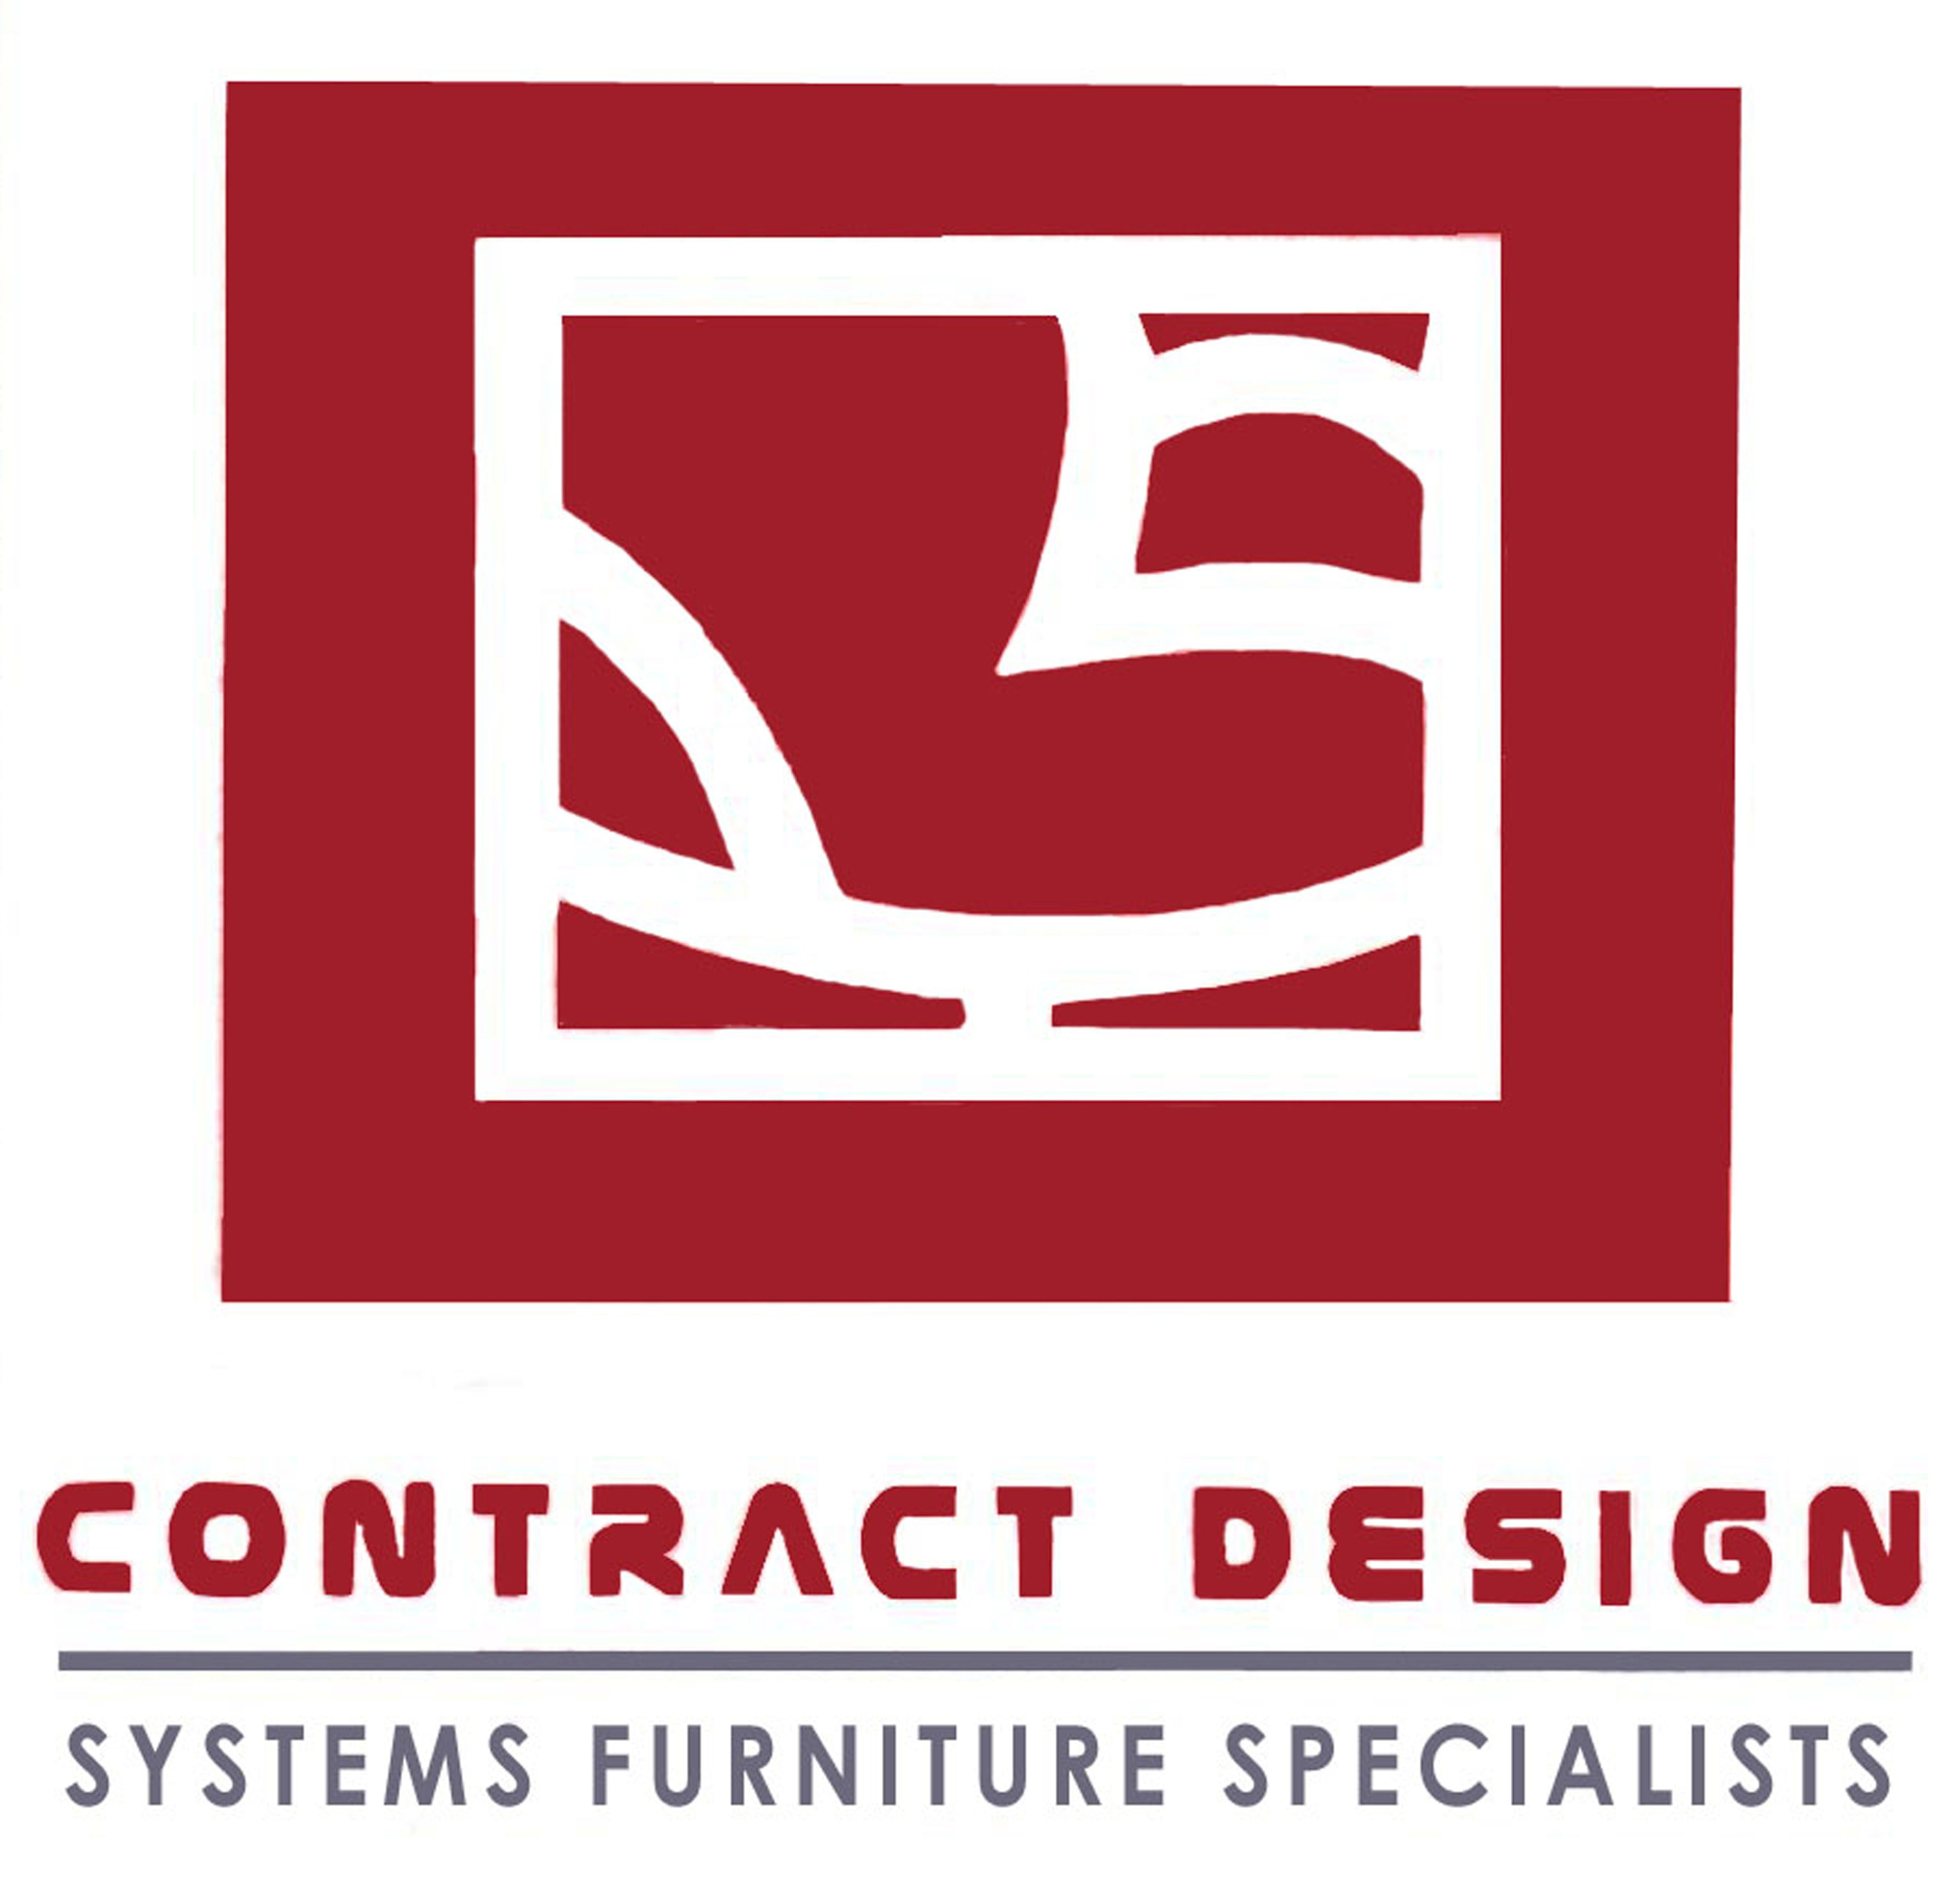 contract design systems furniture specialist - Furniture Specialist